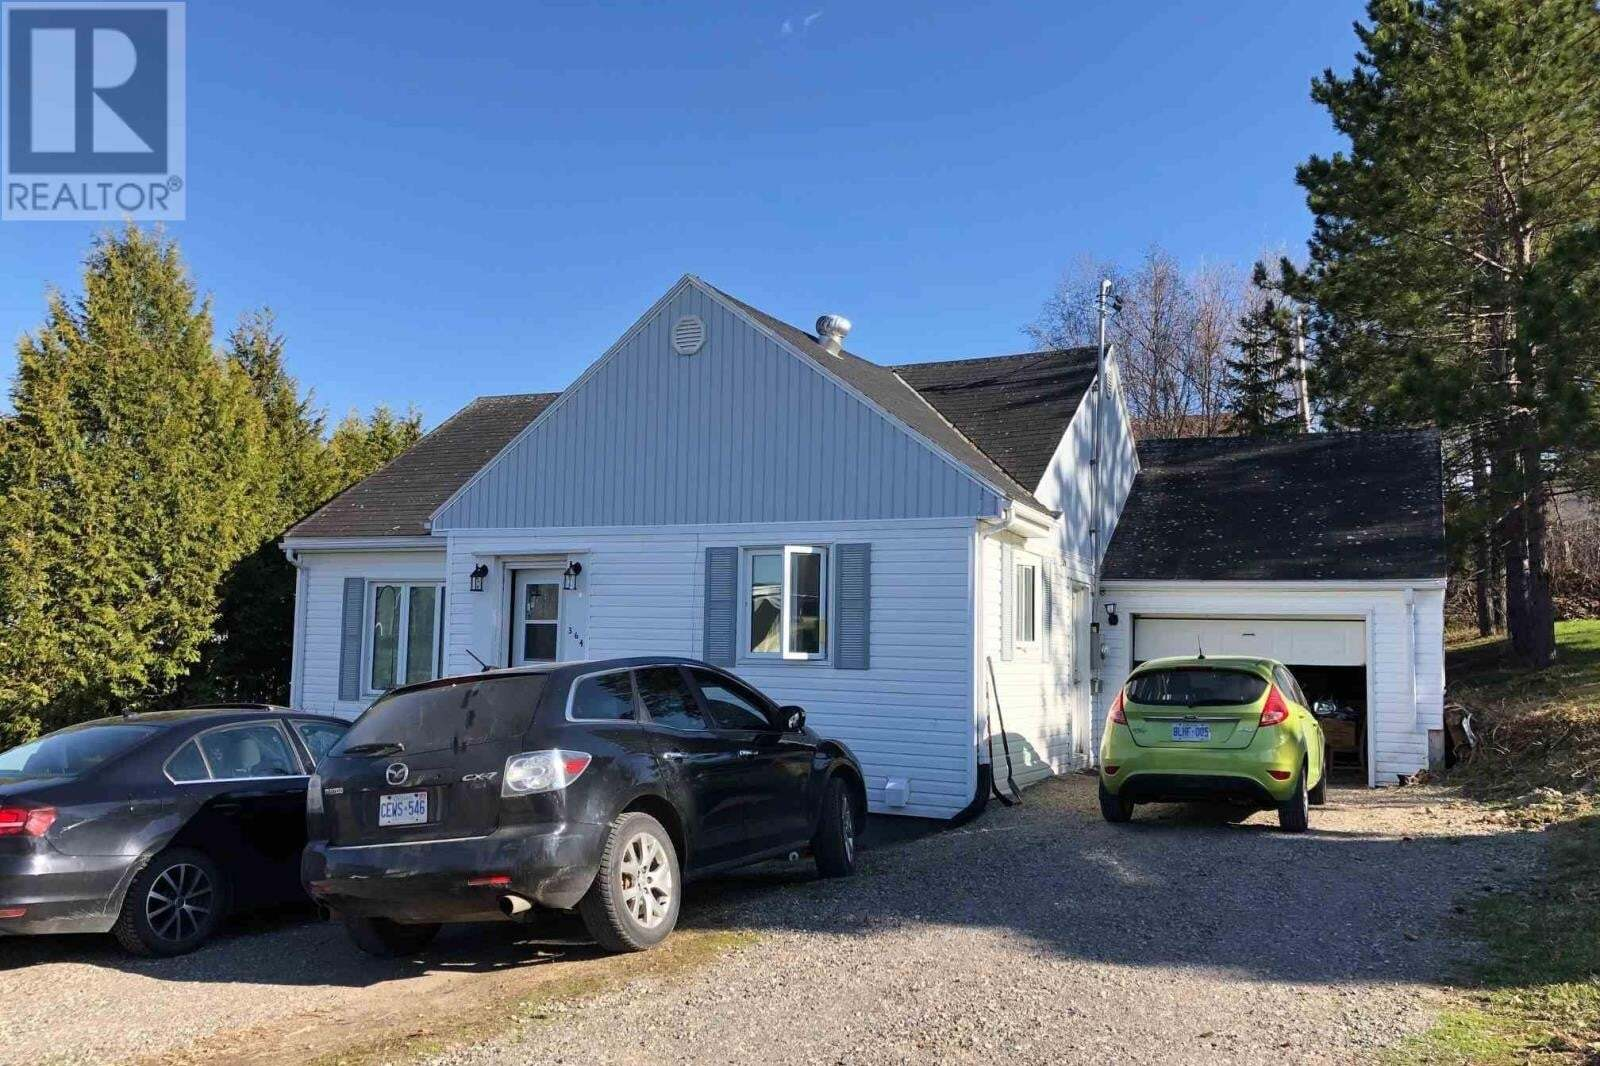 Townhouse for sale at 364 Amwell St Temiskaming Shores Ontario - MLS: TM200892